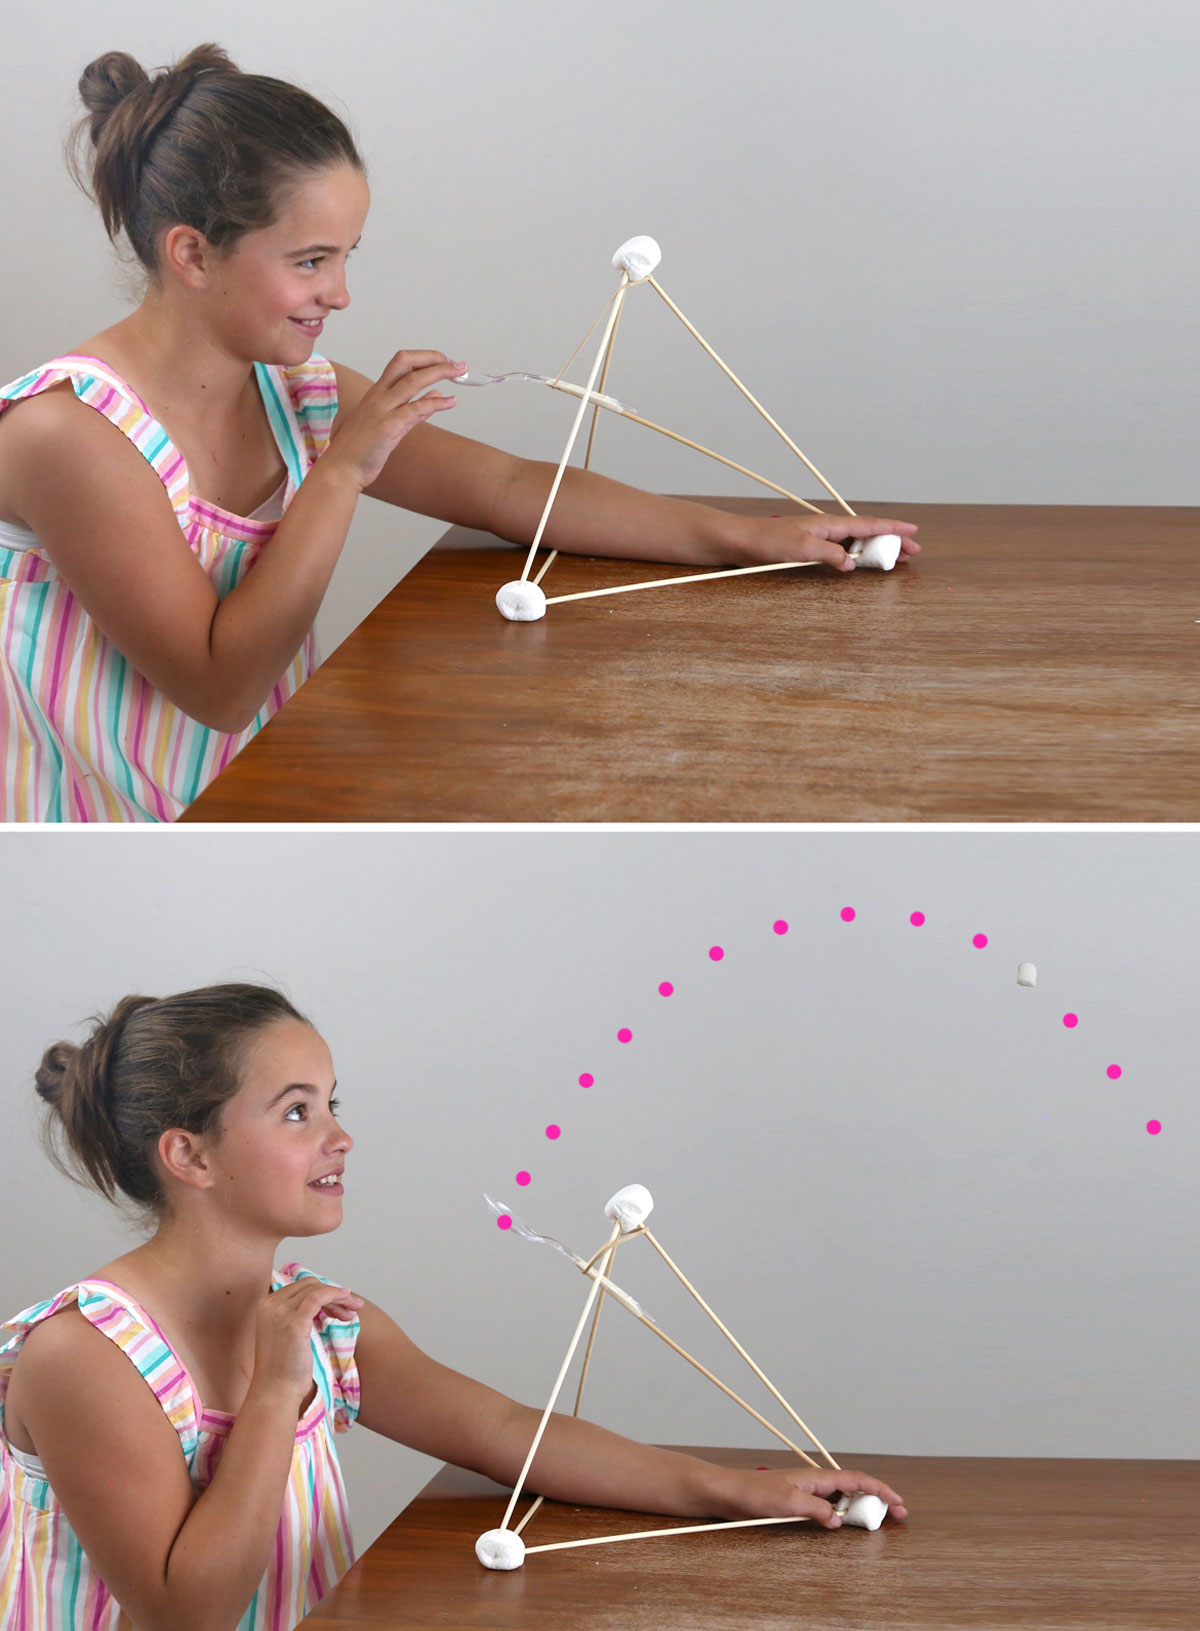 Girl using a marshmallow catapult to launch mini marshmallows